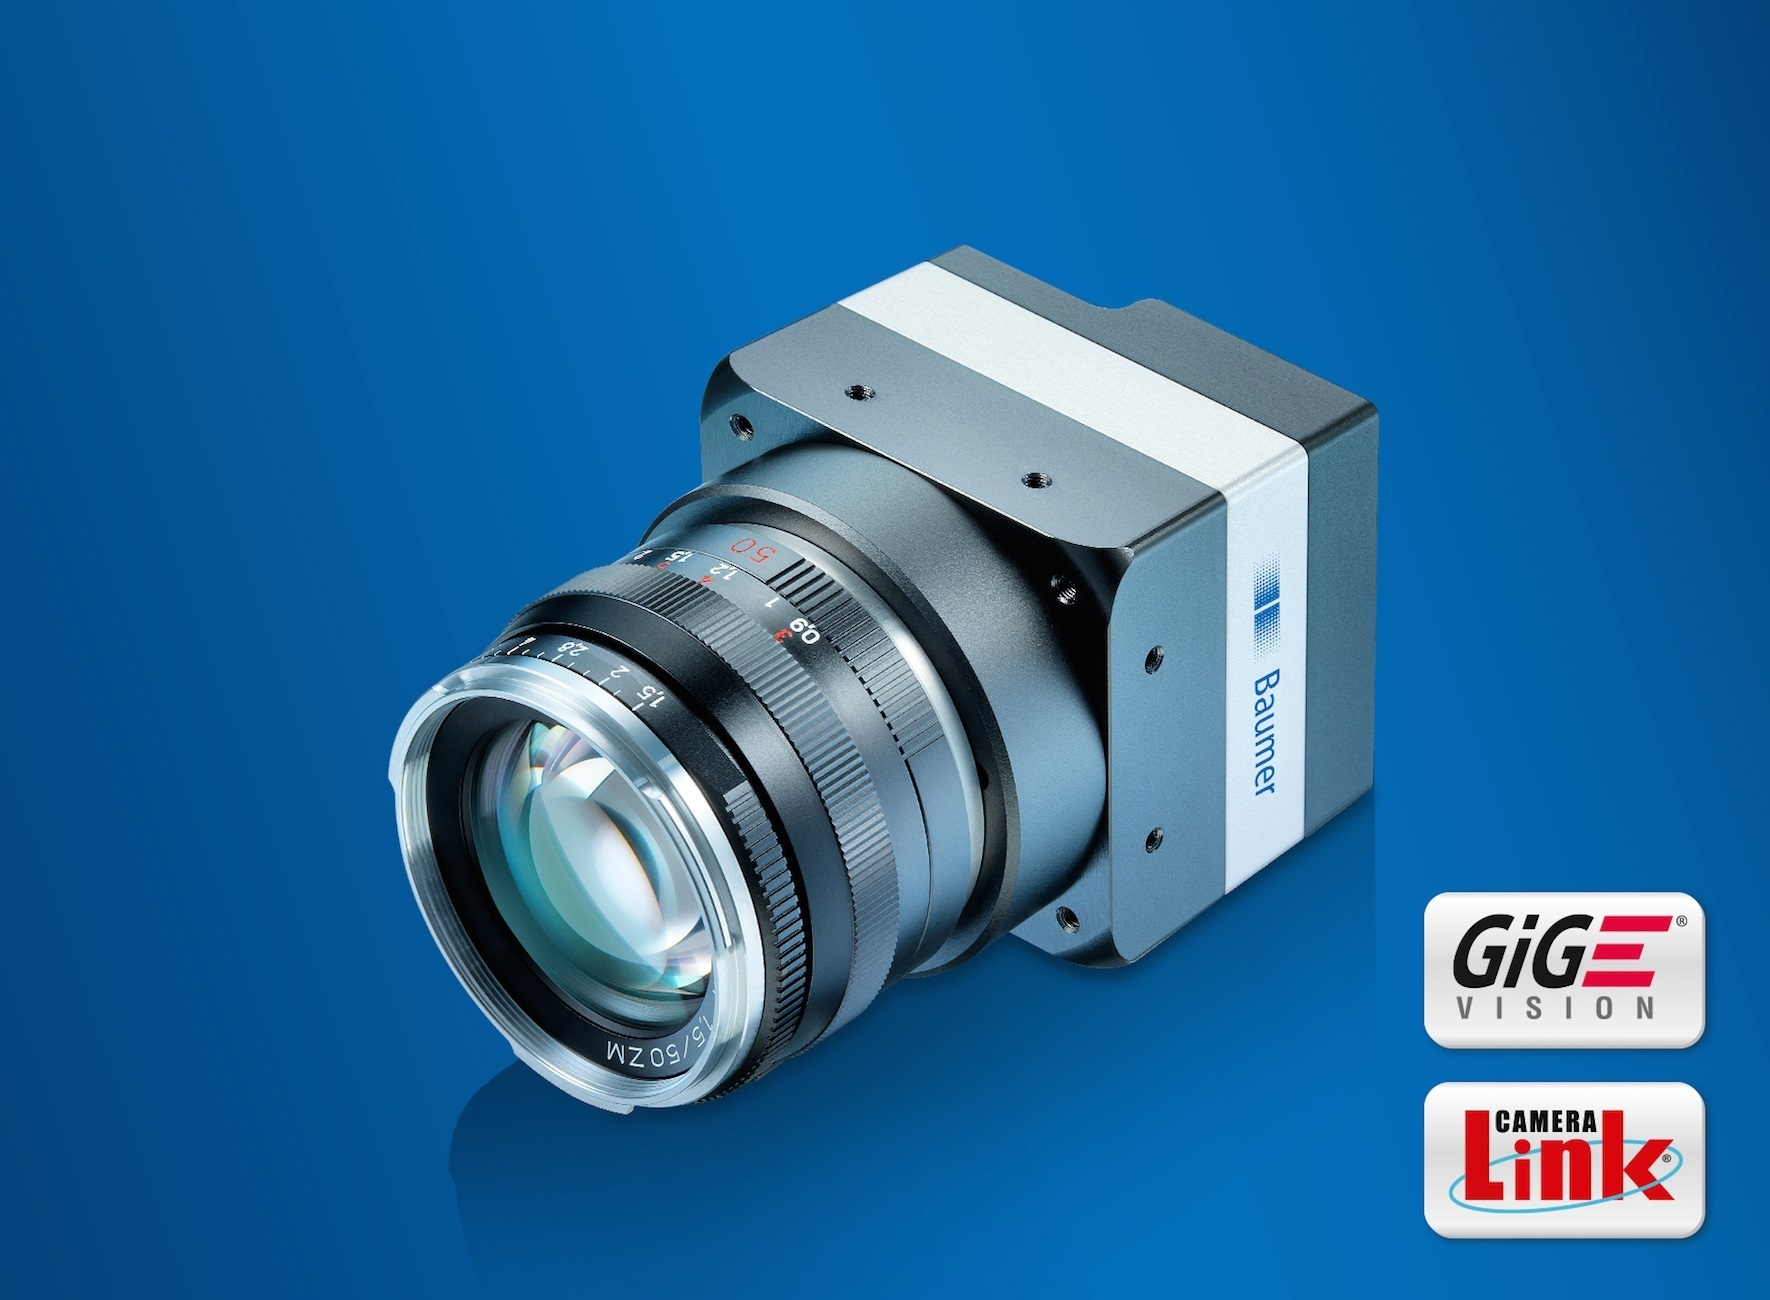 New 25 megapixel CMOS cameras of the LX series enable high-precision inspection at high throughput